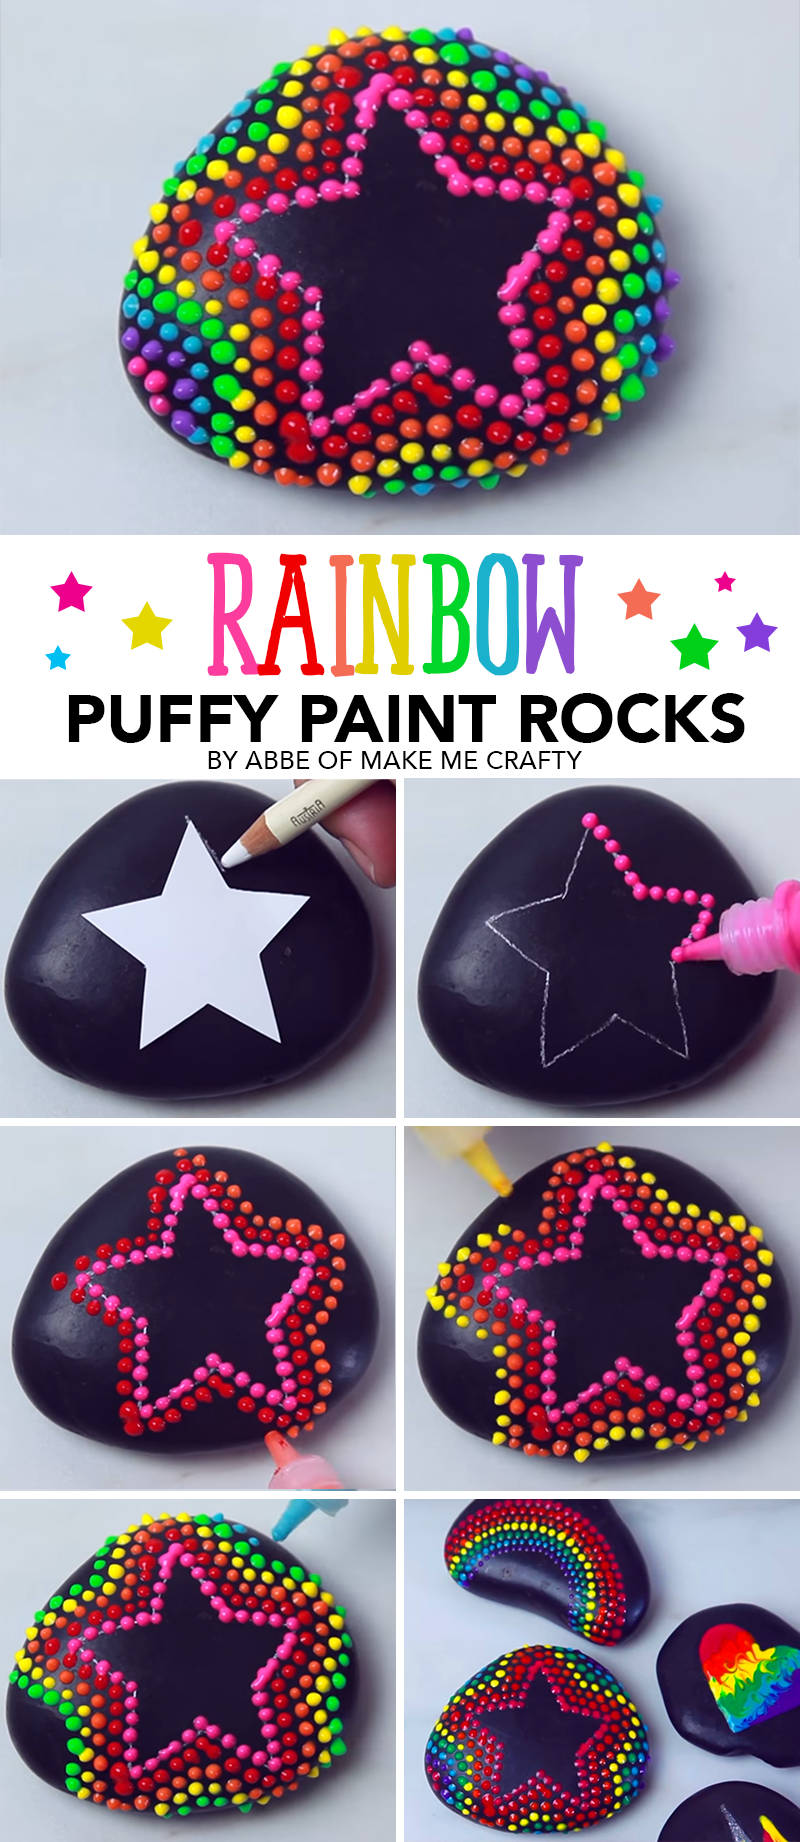 How to Paint Rocks with Puffy Paint